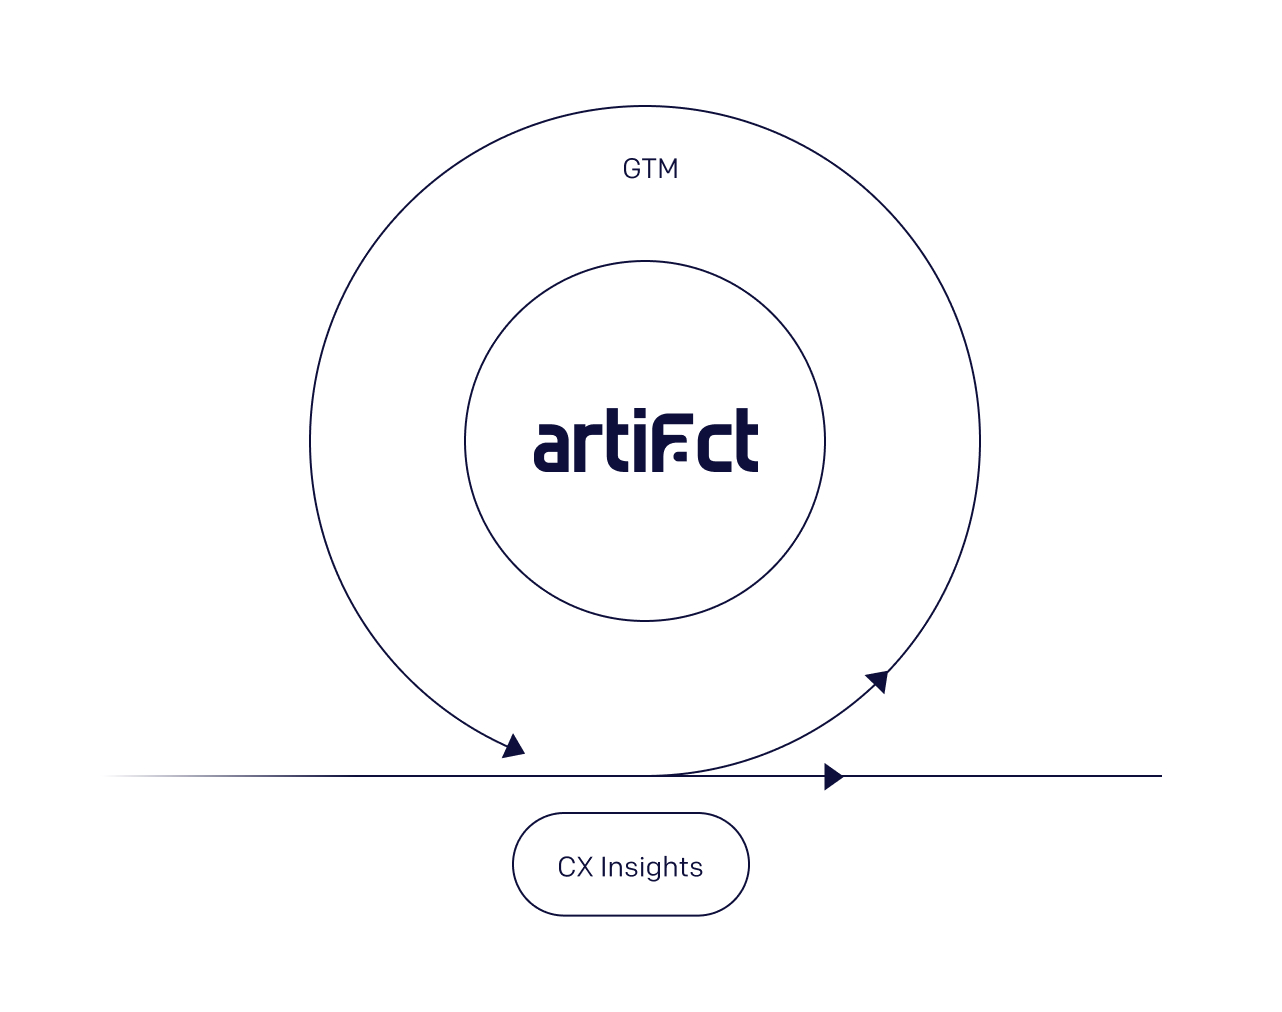 An image depicting how Artifact help go-to-market teams include customer experience insights.